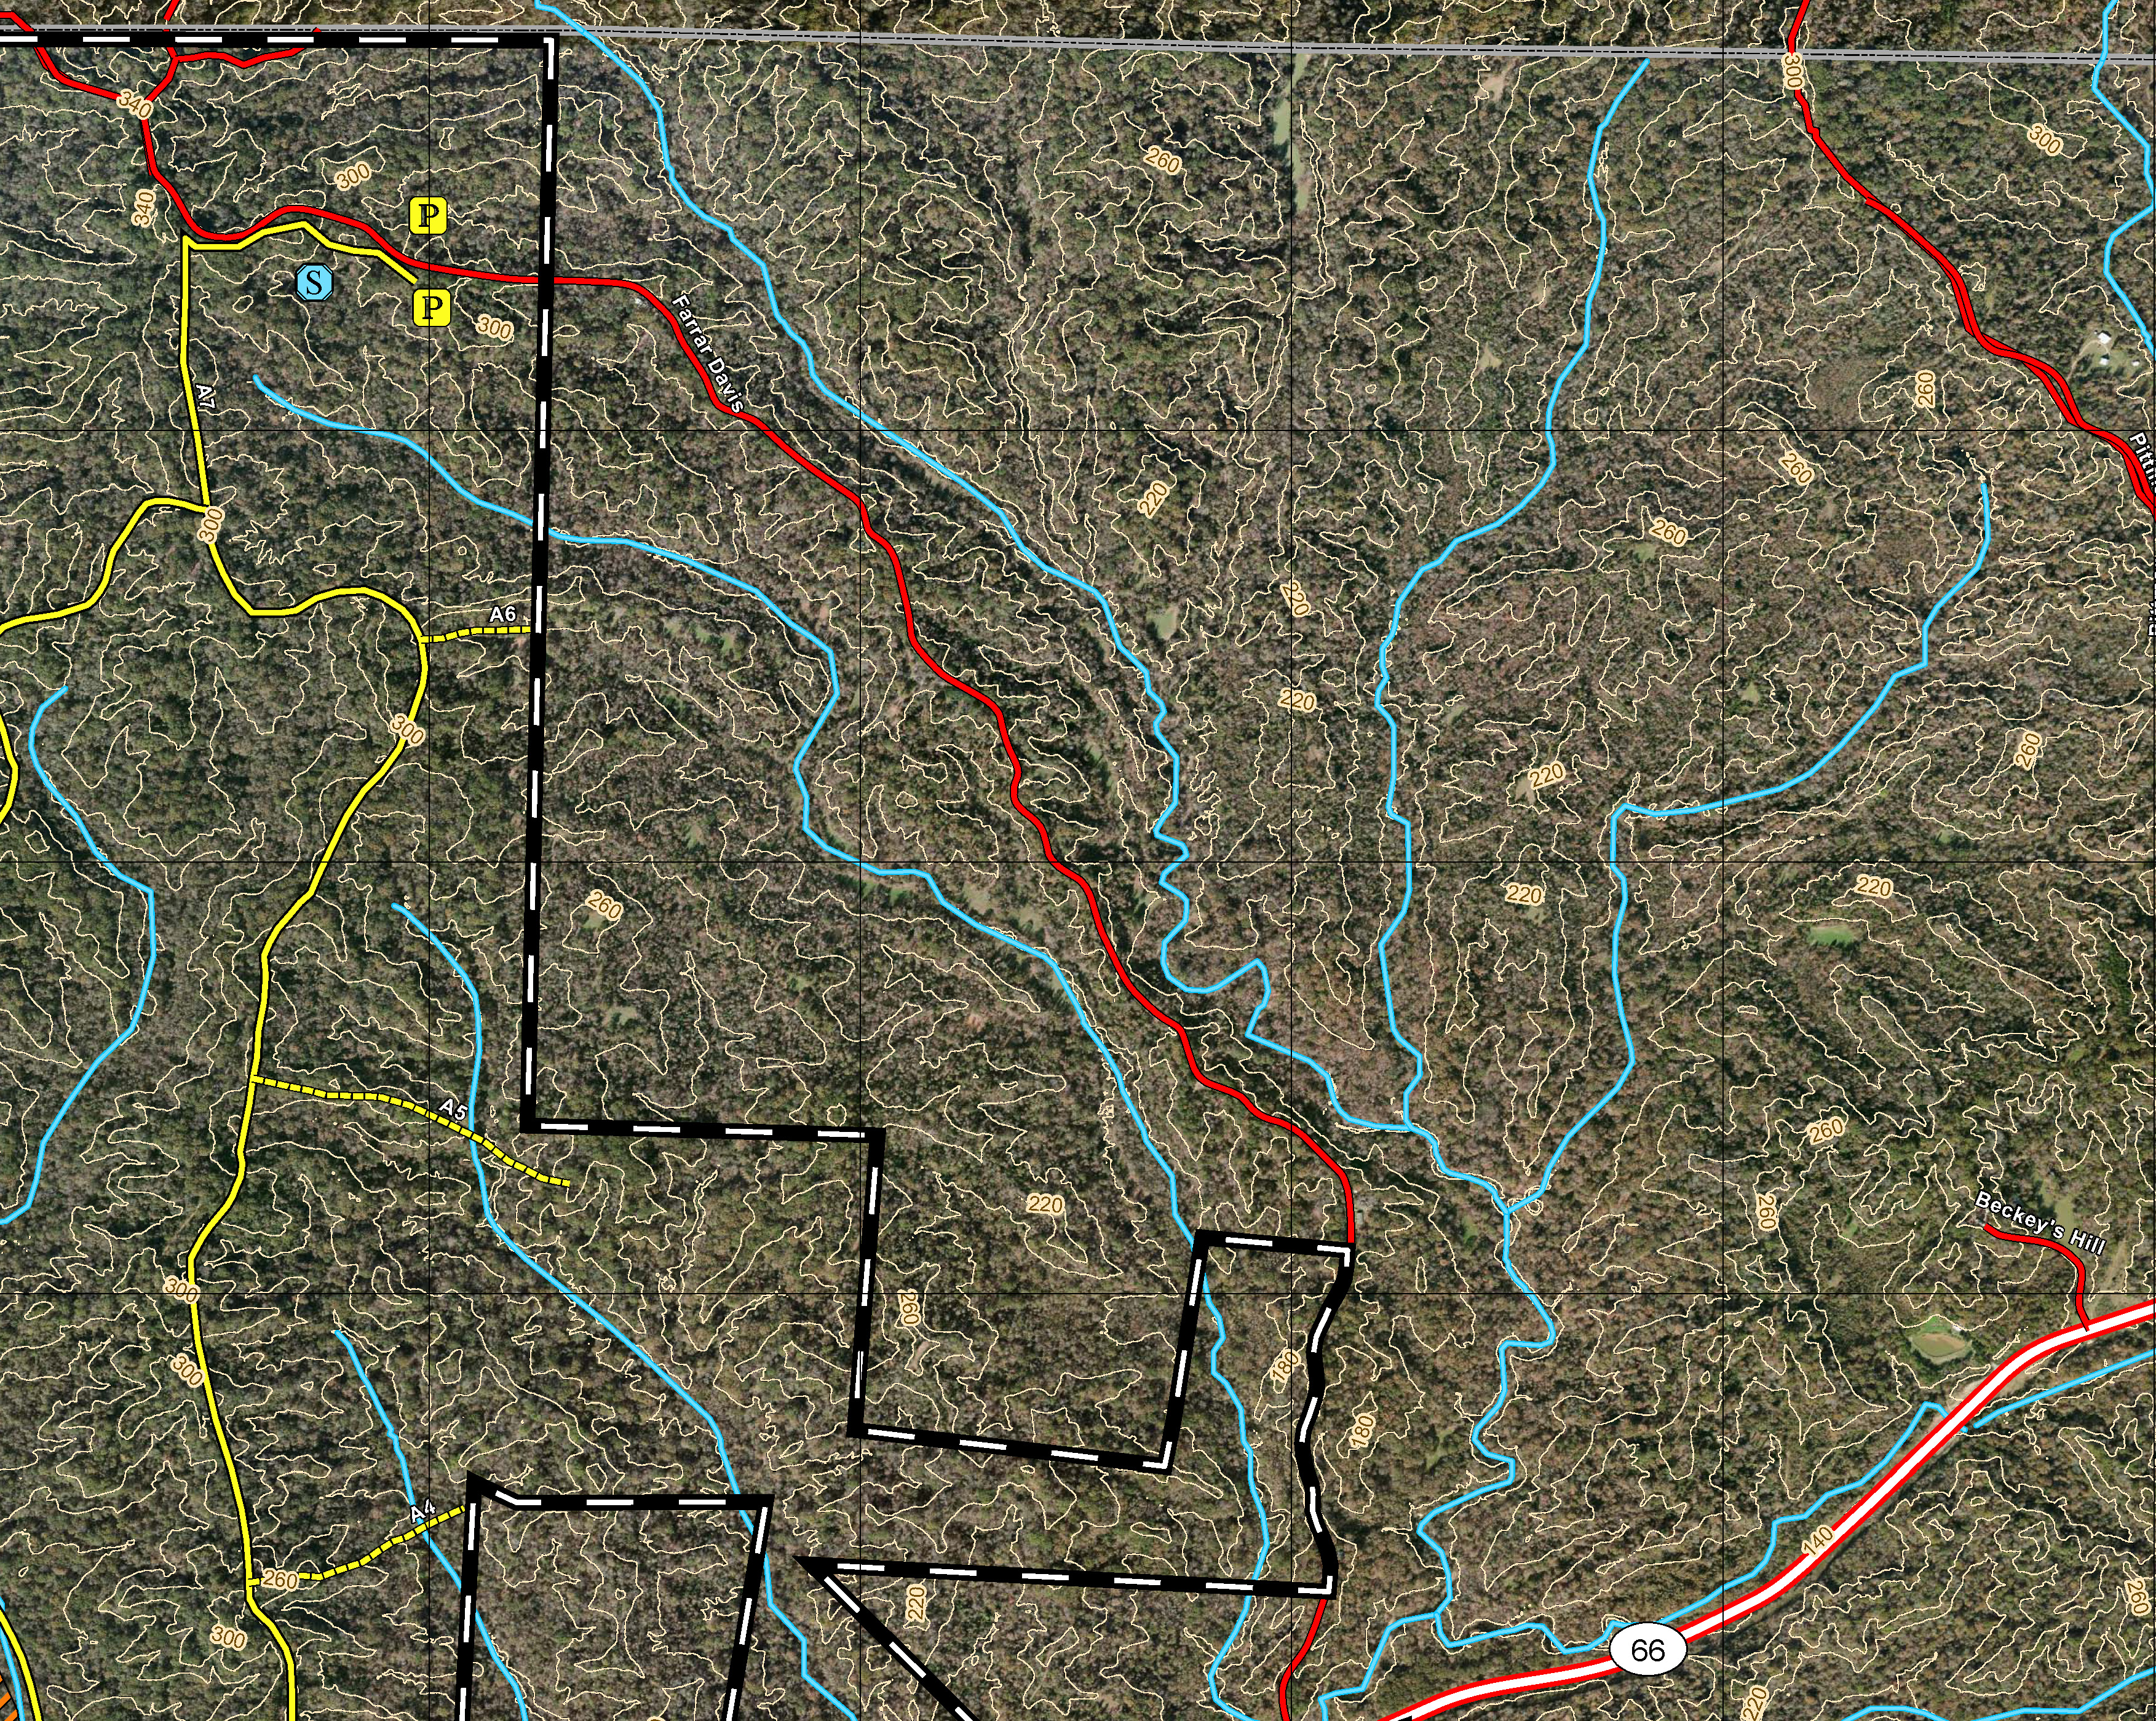 Outdoor_Maps/Tunica_aerial_sample_clip.jpg